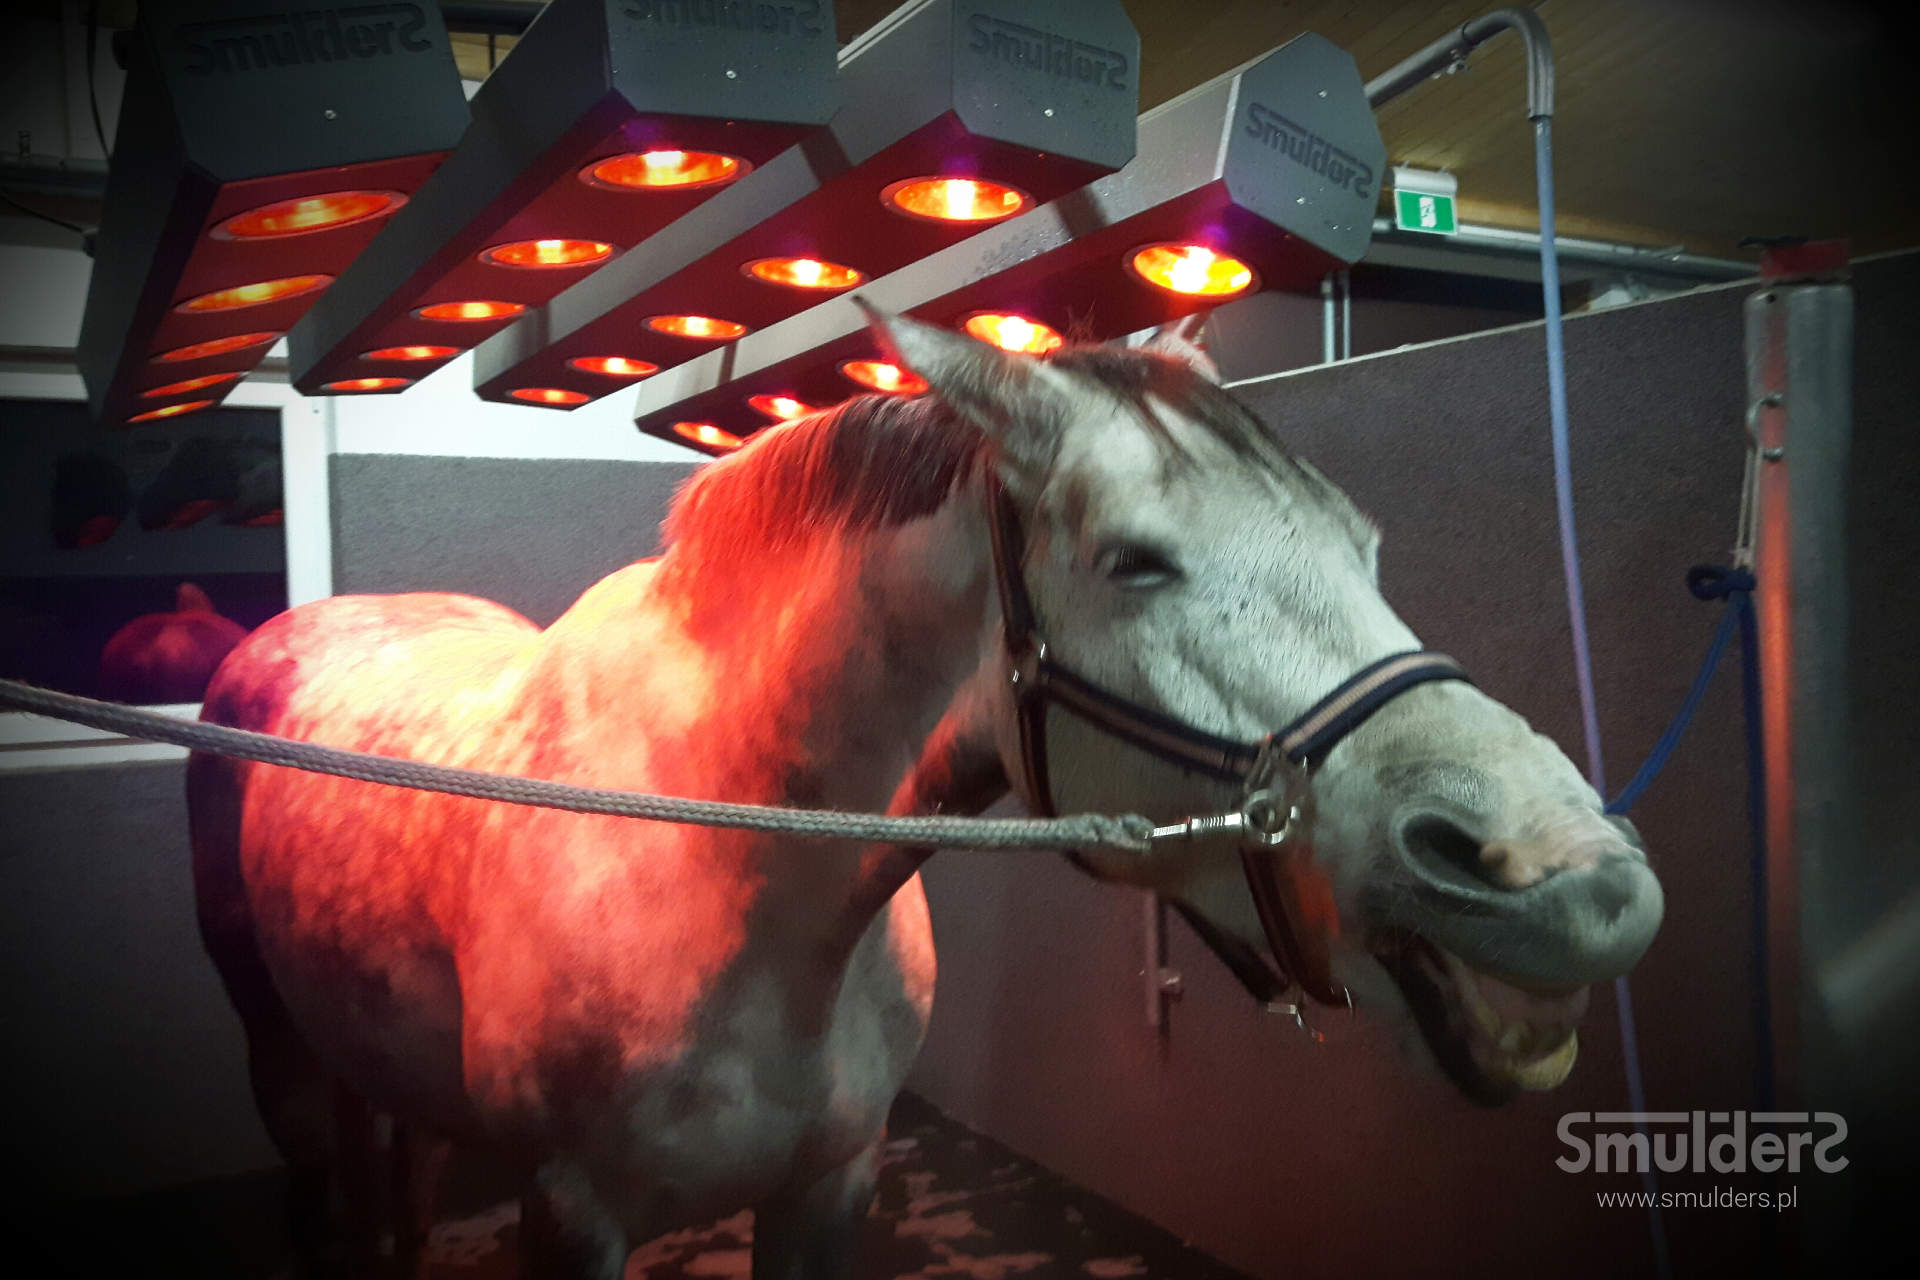 https://www.smulders.pl/wp-content/uploads/2019/02/f008_horse-solariums_solarium-for-horses_SMULDERS_PL.jpg